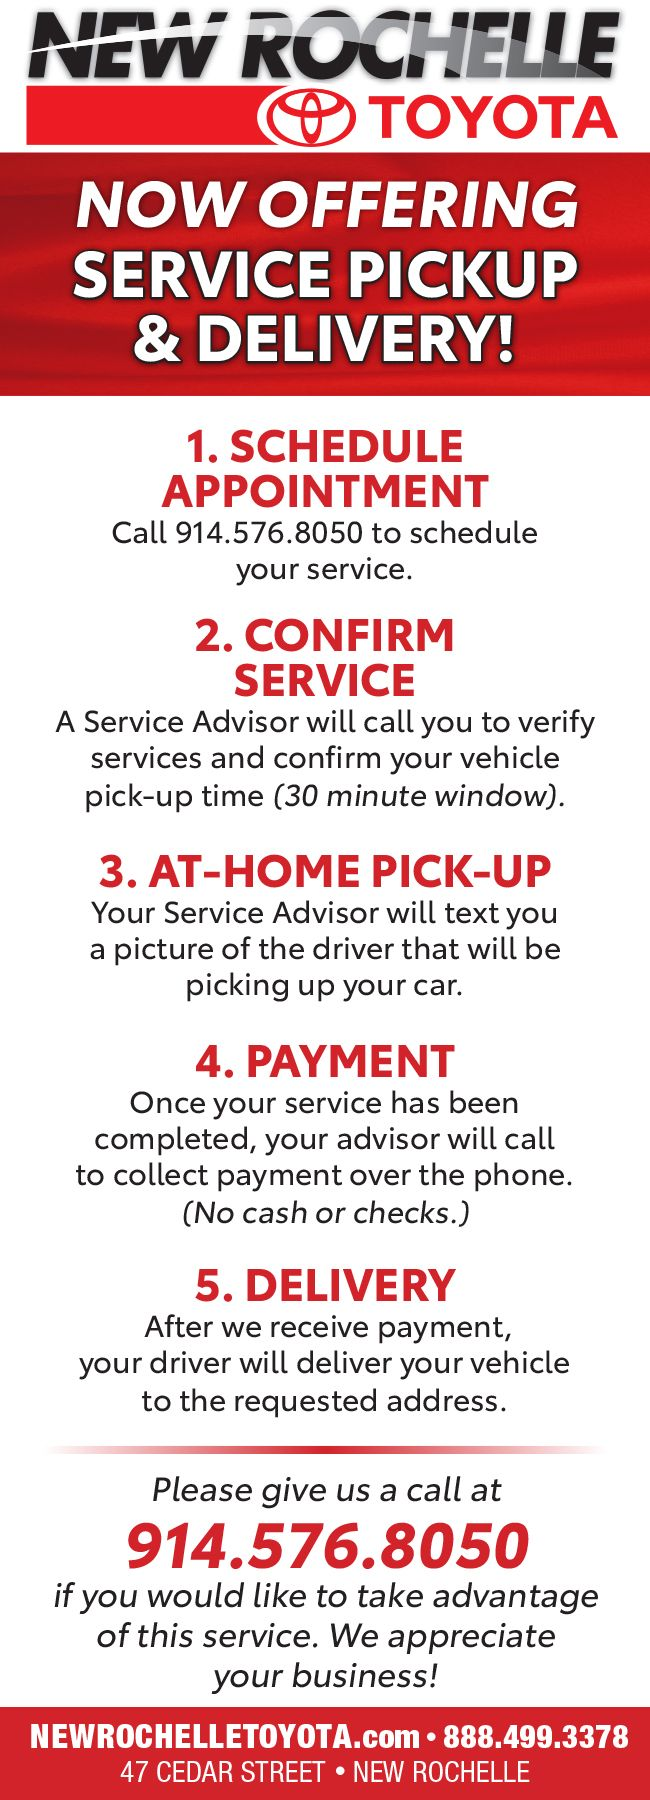 Service Pickup & Delivery at New Rochelle Toyota, NY